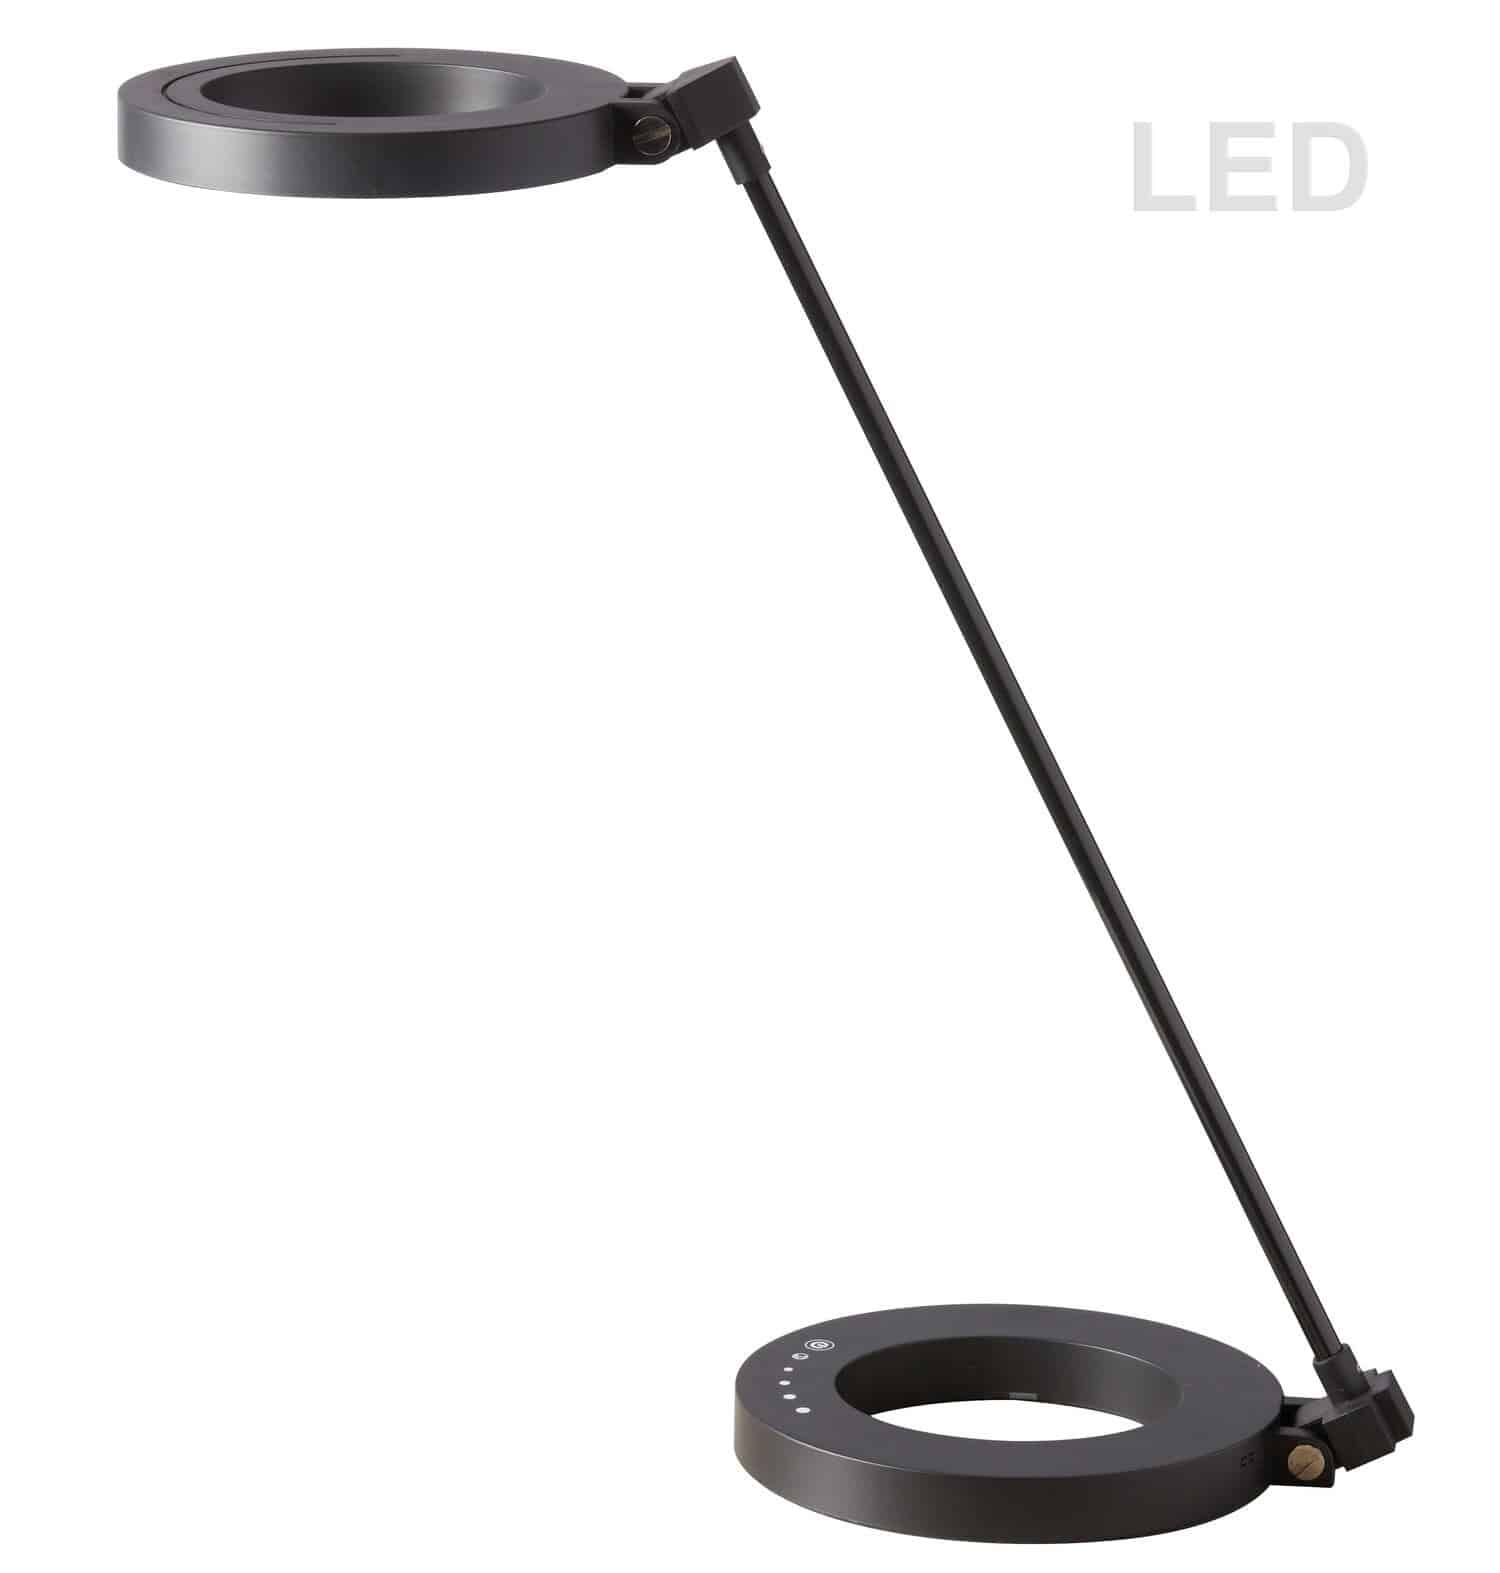 Compact LED Desk Lamp, with Dimmable Switch & Night Light Texture, Matte Black finish